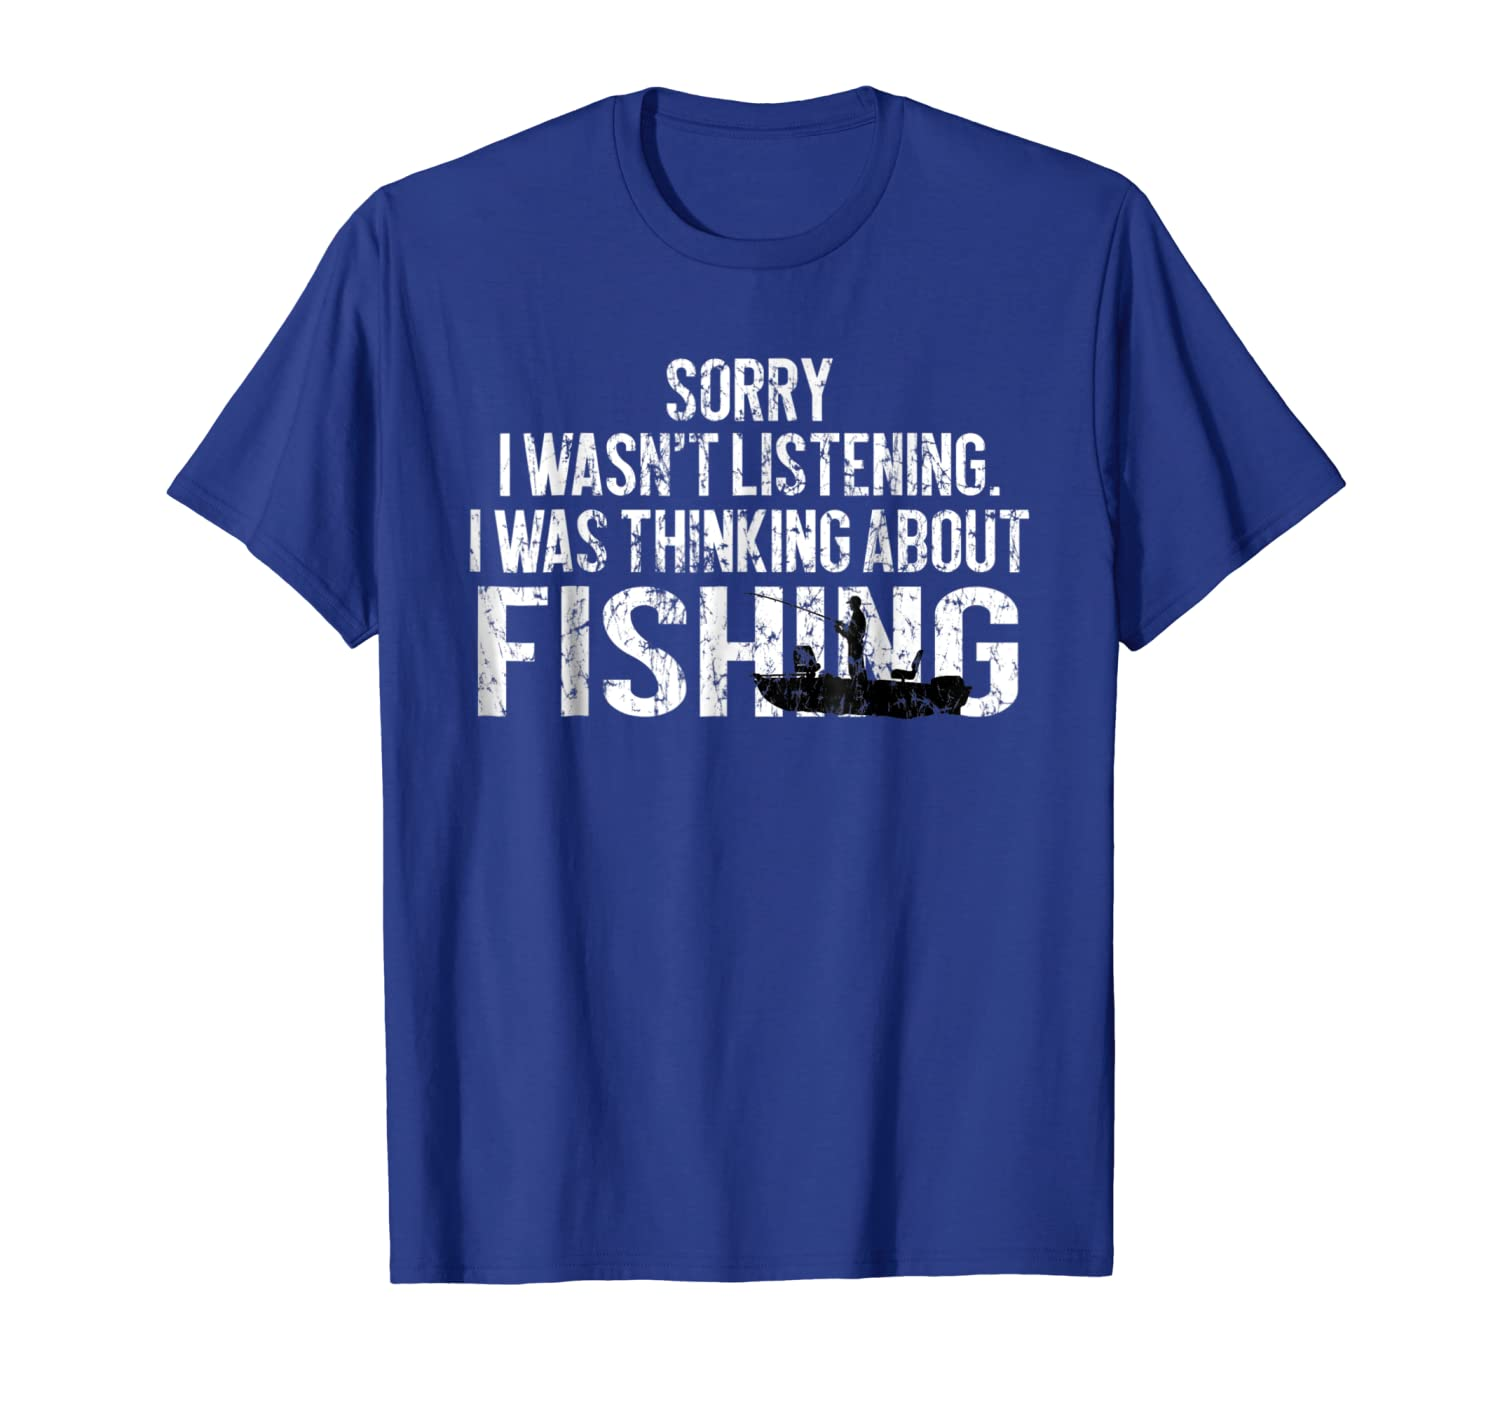 Fishing Funny Shirt Sarcasm Quotes Joke Hobbies Humor Unisex Tshirt